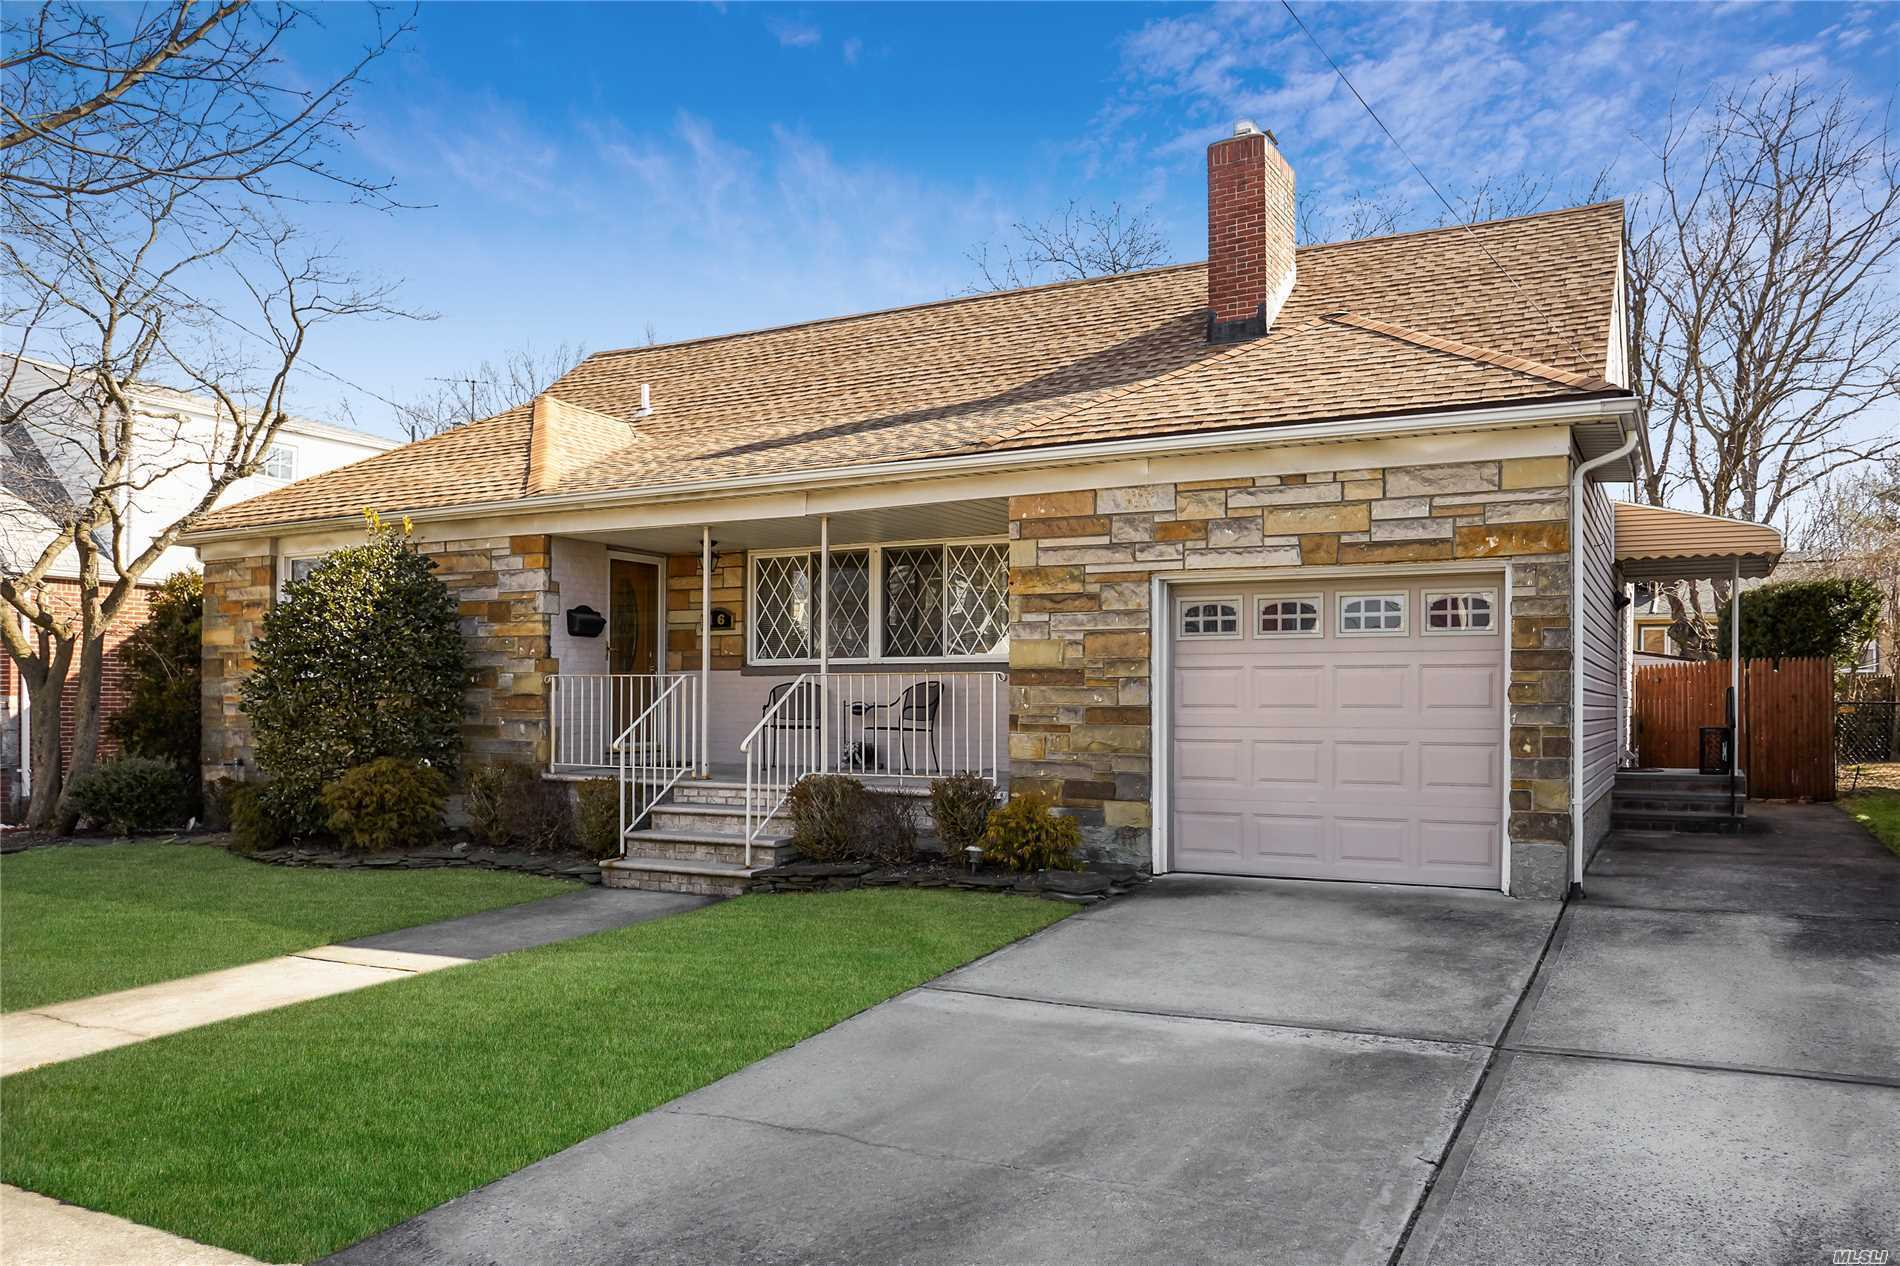 Unique, Deceptively Large Expanded Cape Located In Stewart Manor Village On An Oversized Property , Quiet Street. Ideal For A Large Or Extended Family. Finished Hardwood Floors Throughout, New Roof, New Bathrooms, & Gorgeous Eat-In Kitchen. Lovely Open Feel Throughout And Sliding Doors That Open To A Deck And Backyard. 2 Blocks From Newly Renovated Stewart Manor L.I.R.R. Station & Stewart Avenue Grade School. Total Taxes Include Village.